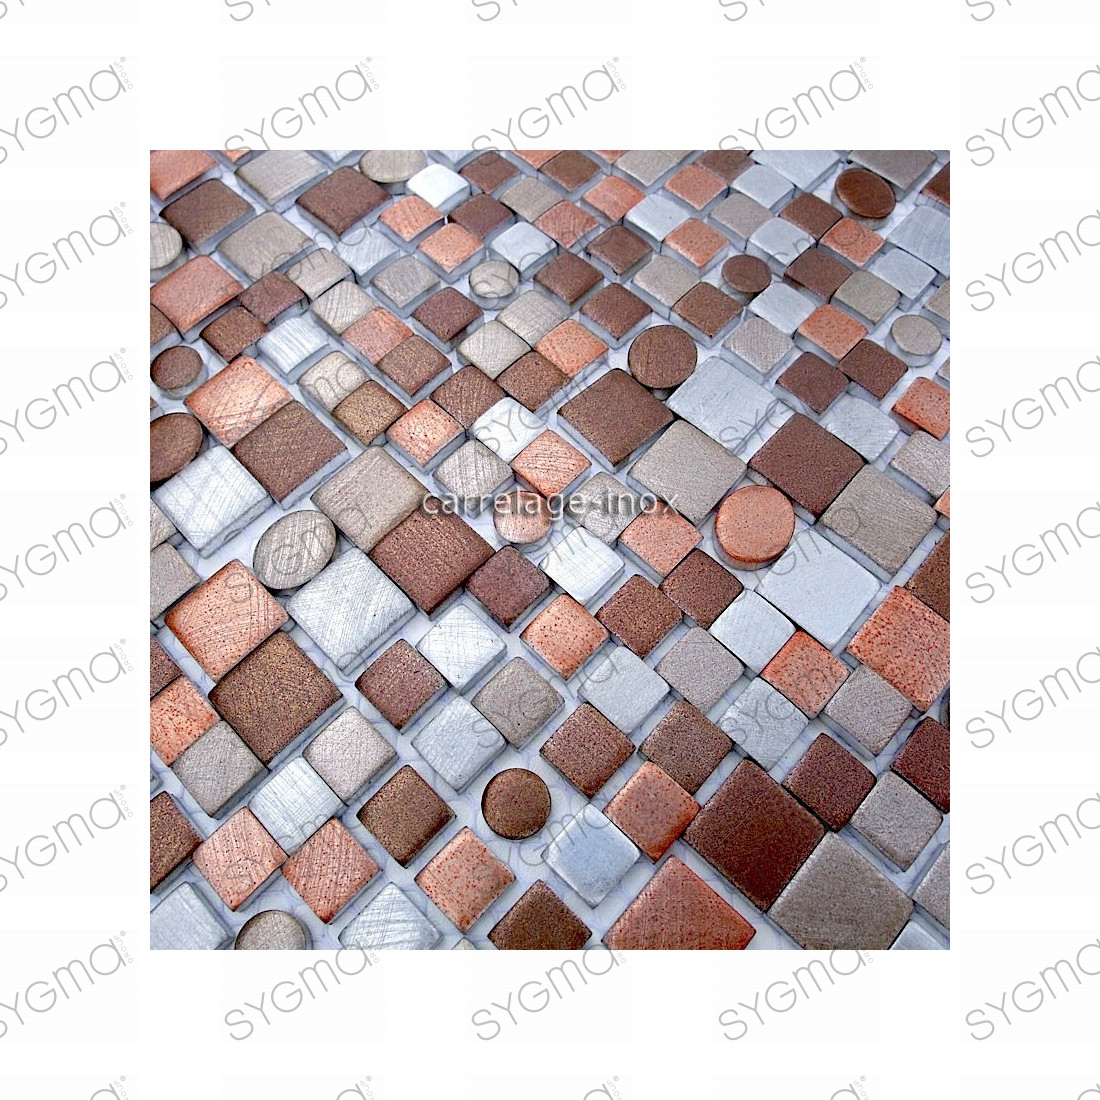 Carrelage aluminium mosaique 1 plaque trendybeige for Mosaique carrelage